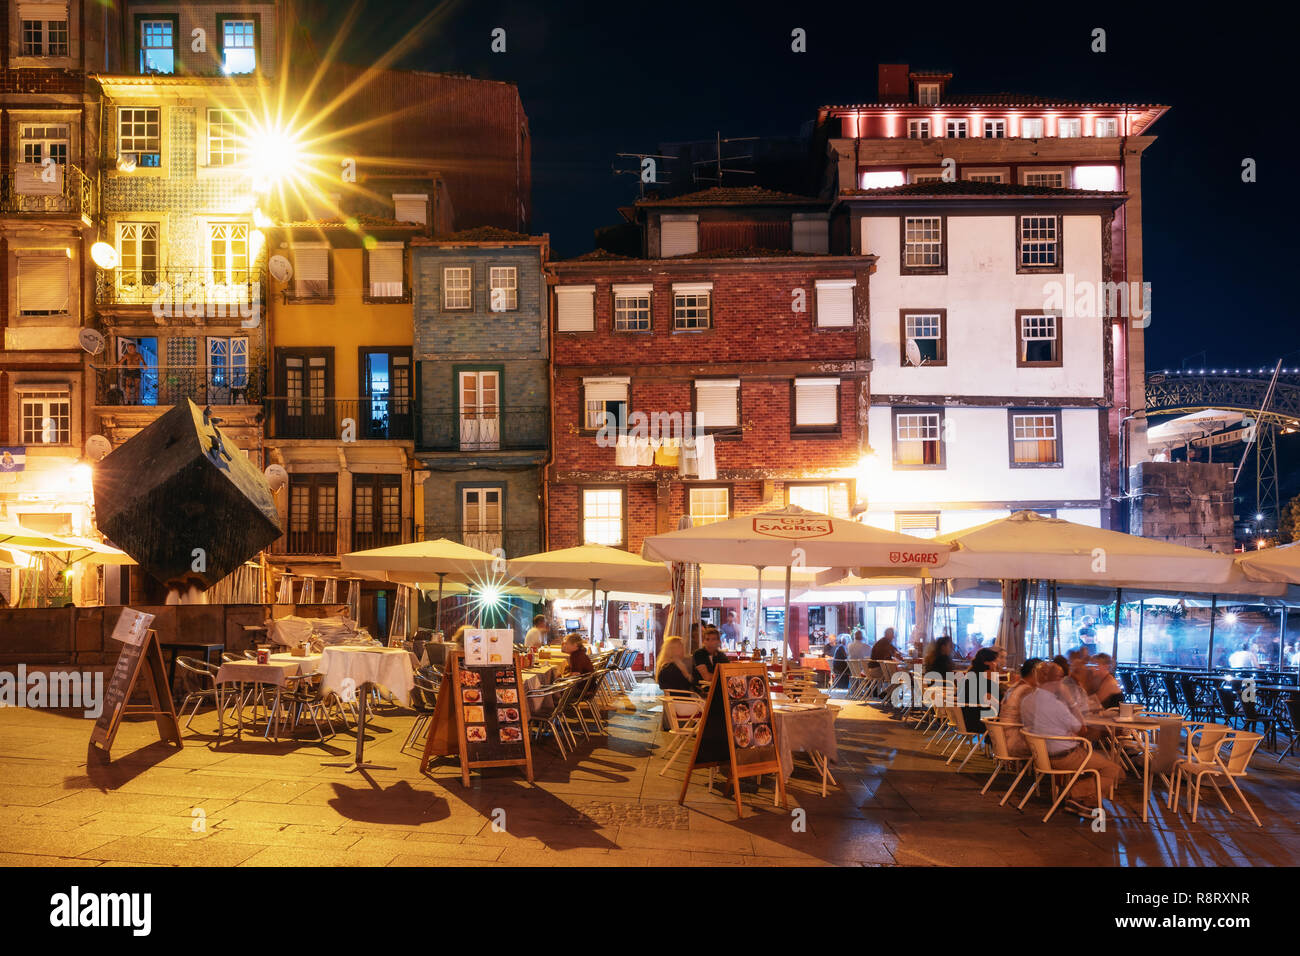 Porto, Portugal - September 27, 2018: Porto, Nightlife on the crowded promenade of the Douro River with cafes and restaurants in Porto - Stock Image